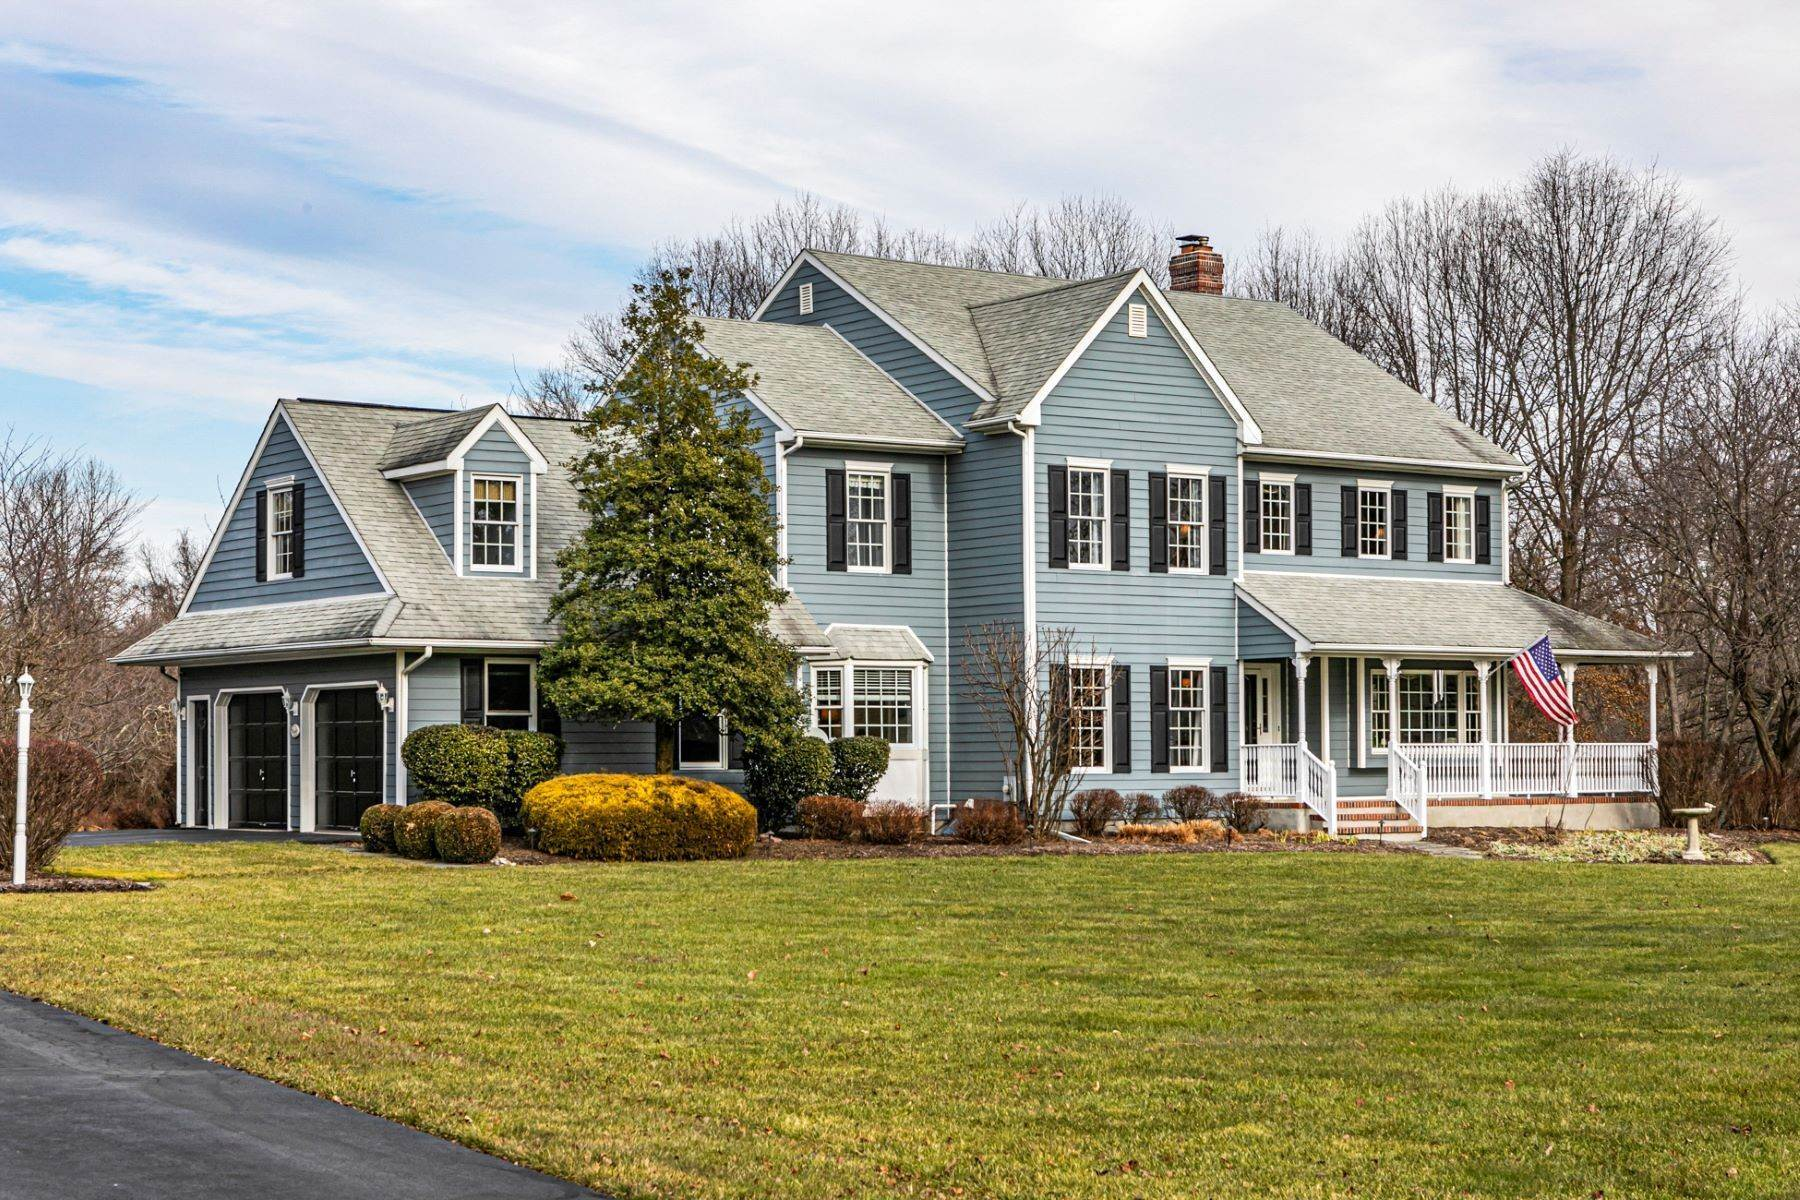 Single Family Homes for Sale at Pristine Cul-De-Sac Home Right Outside The Borough 16 The Kings Path, Hopewell, New Jersey 08525 United States